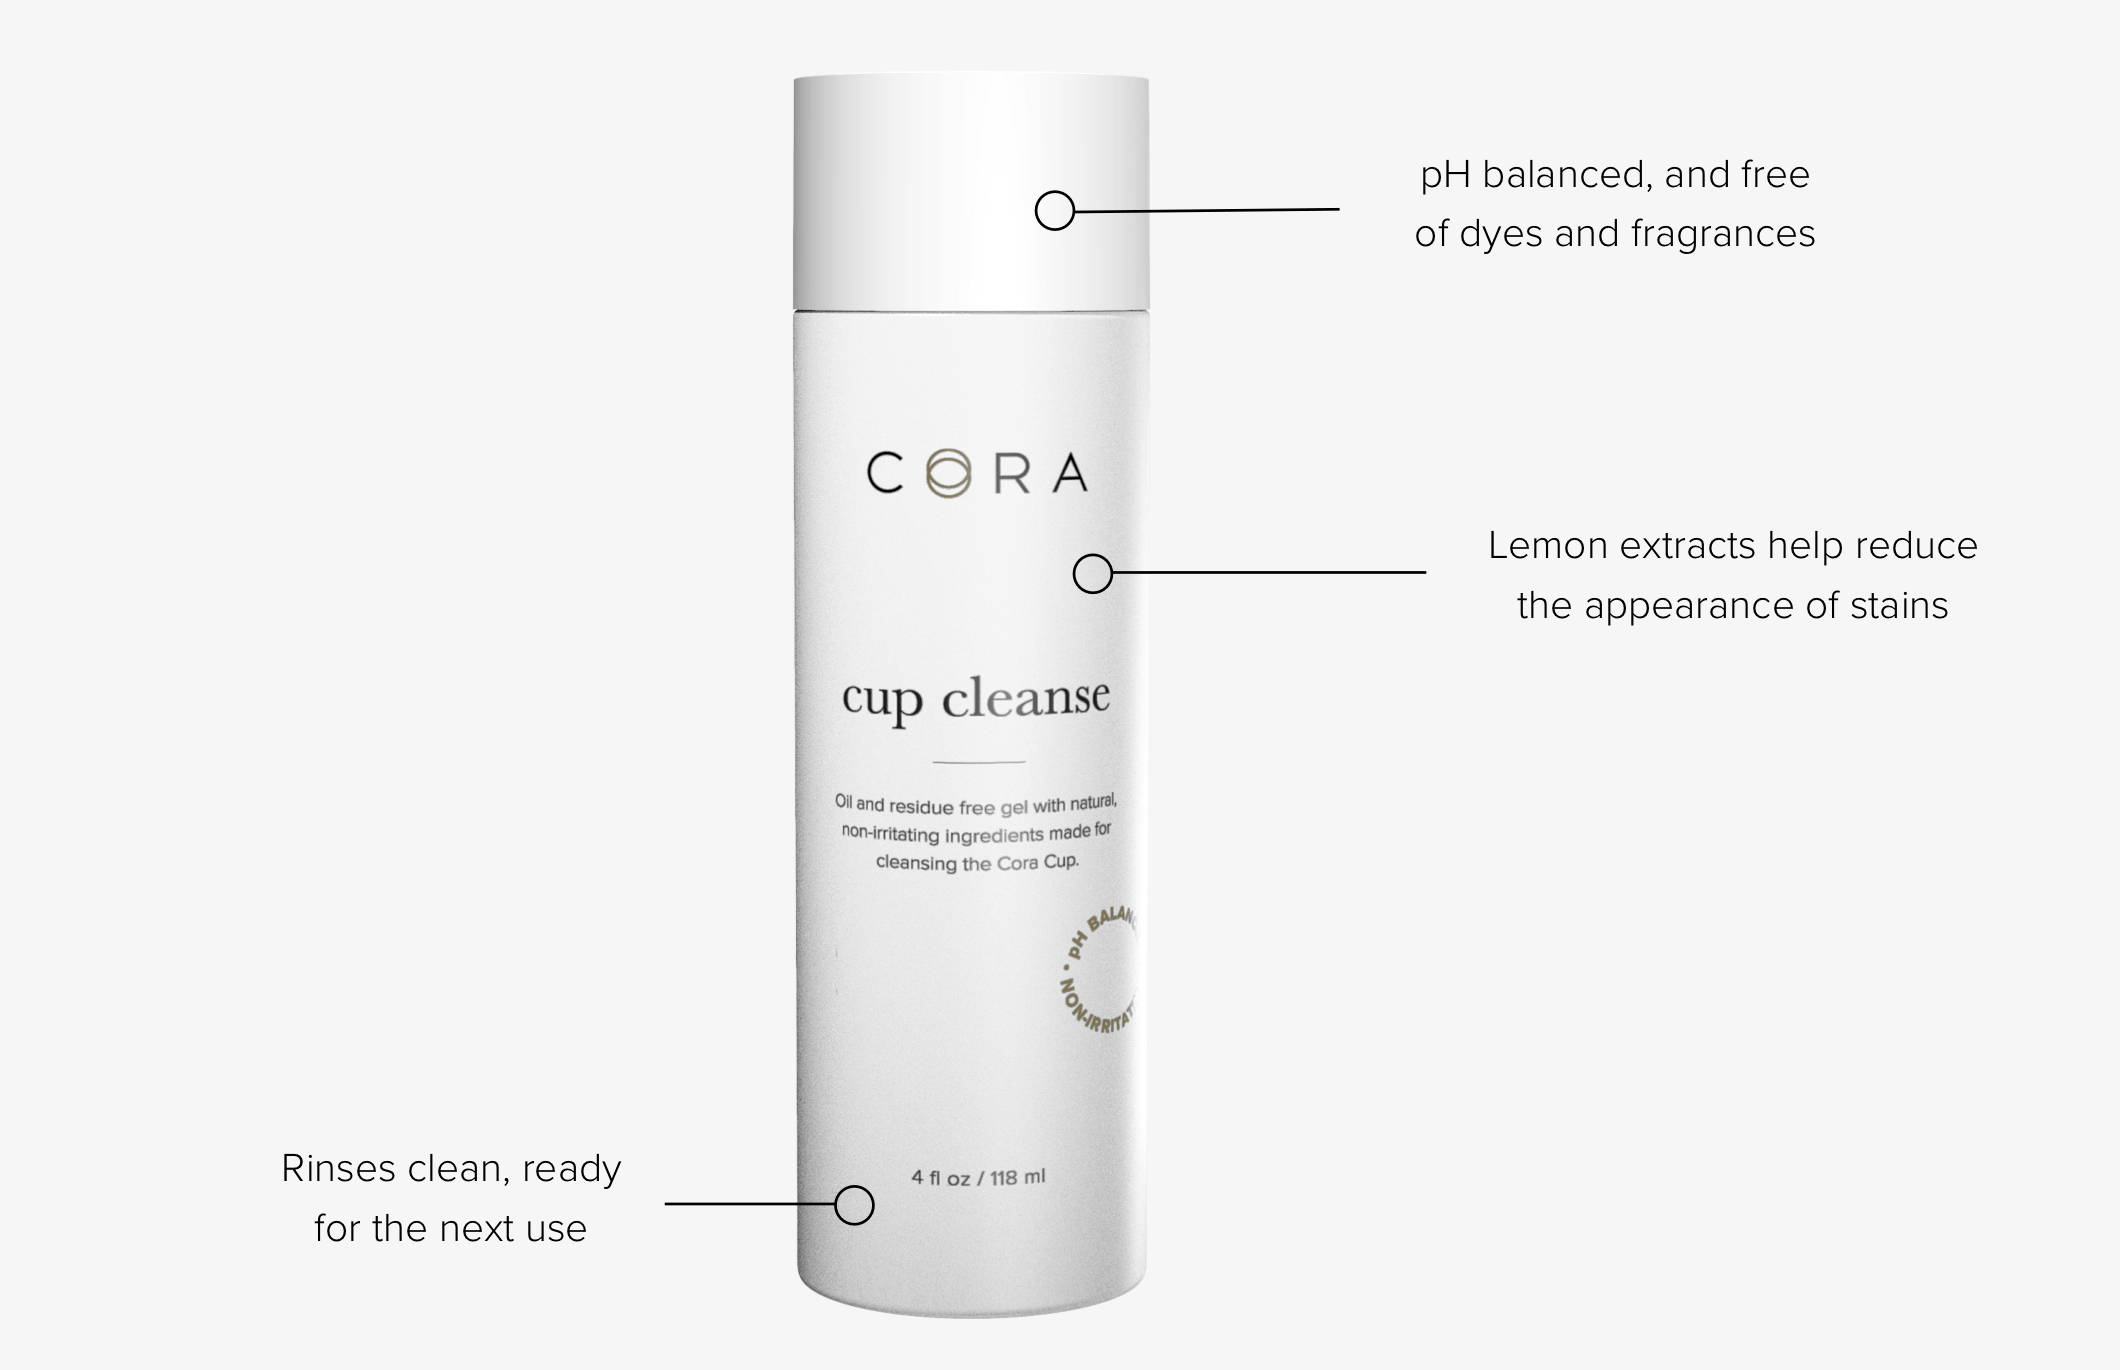 A bottle of Cora's menstrual cup cleanse surrounded by descriptions of its features and ingredients.